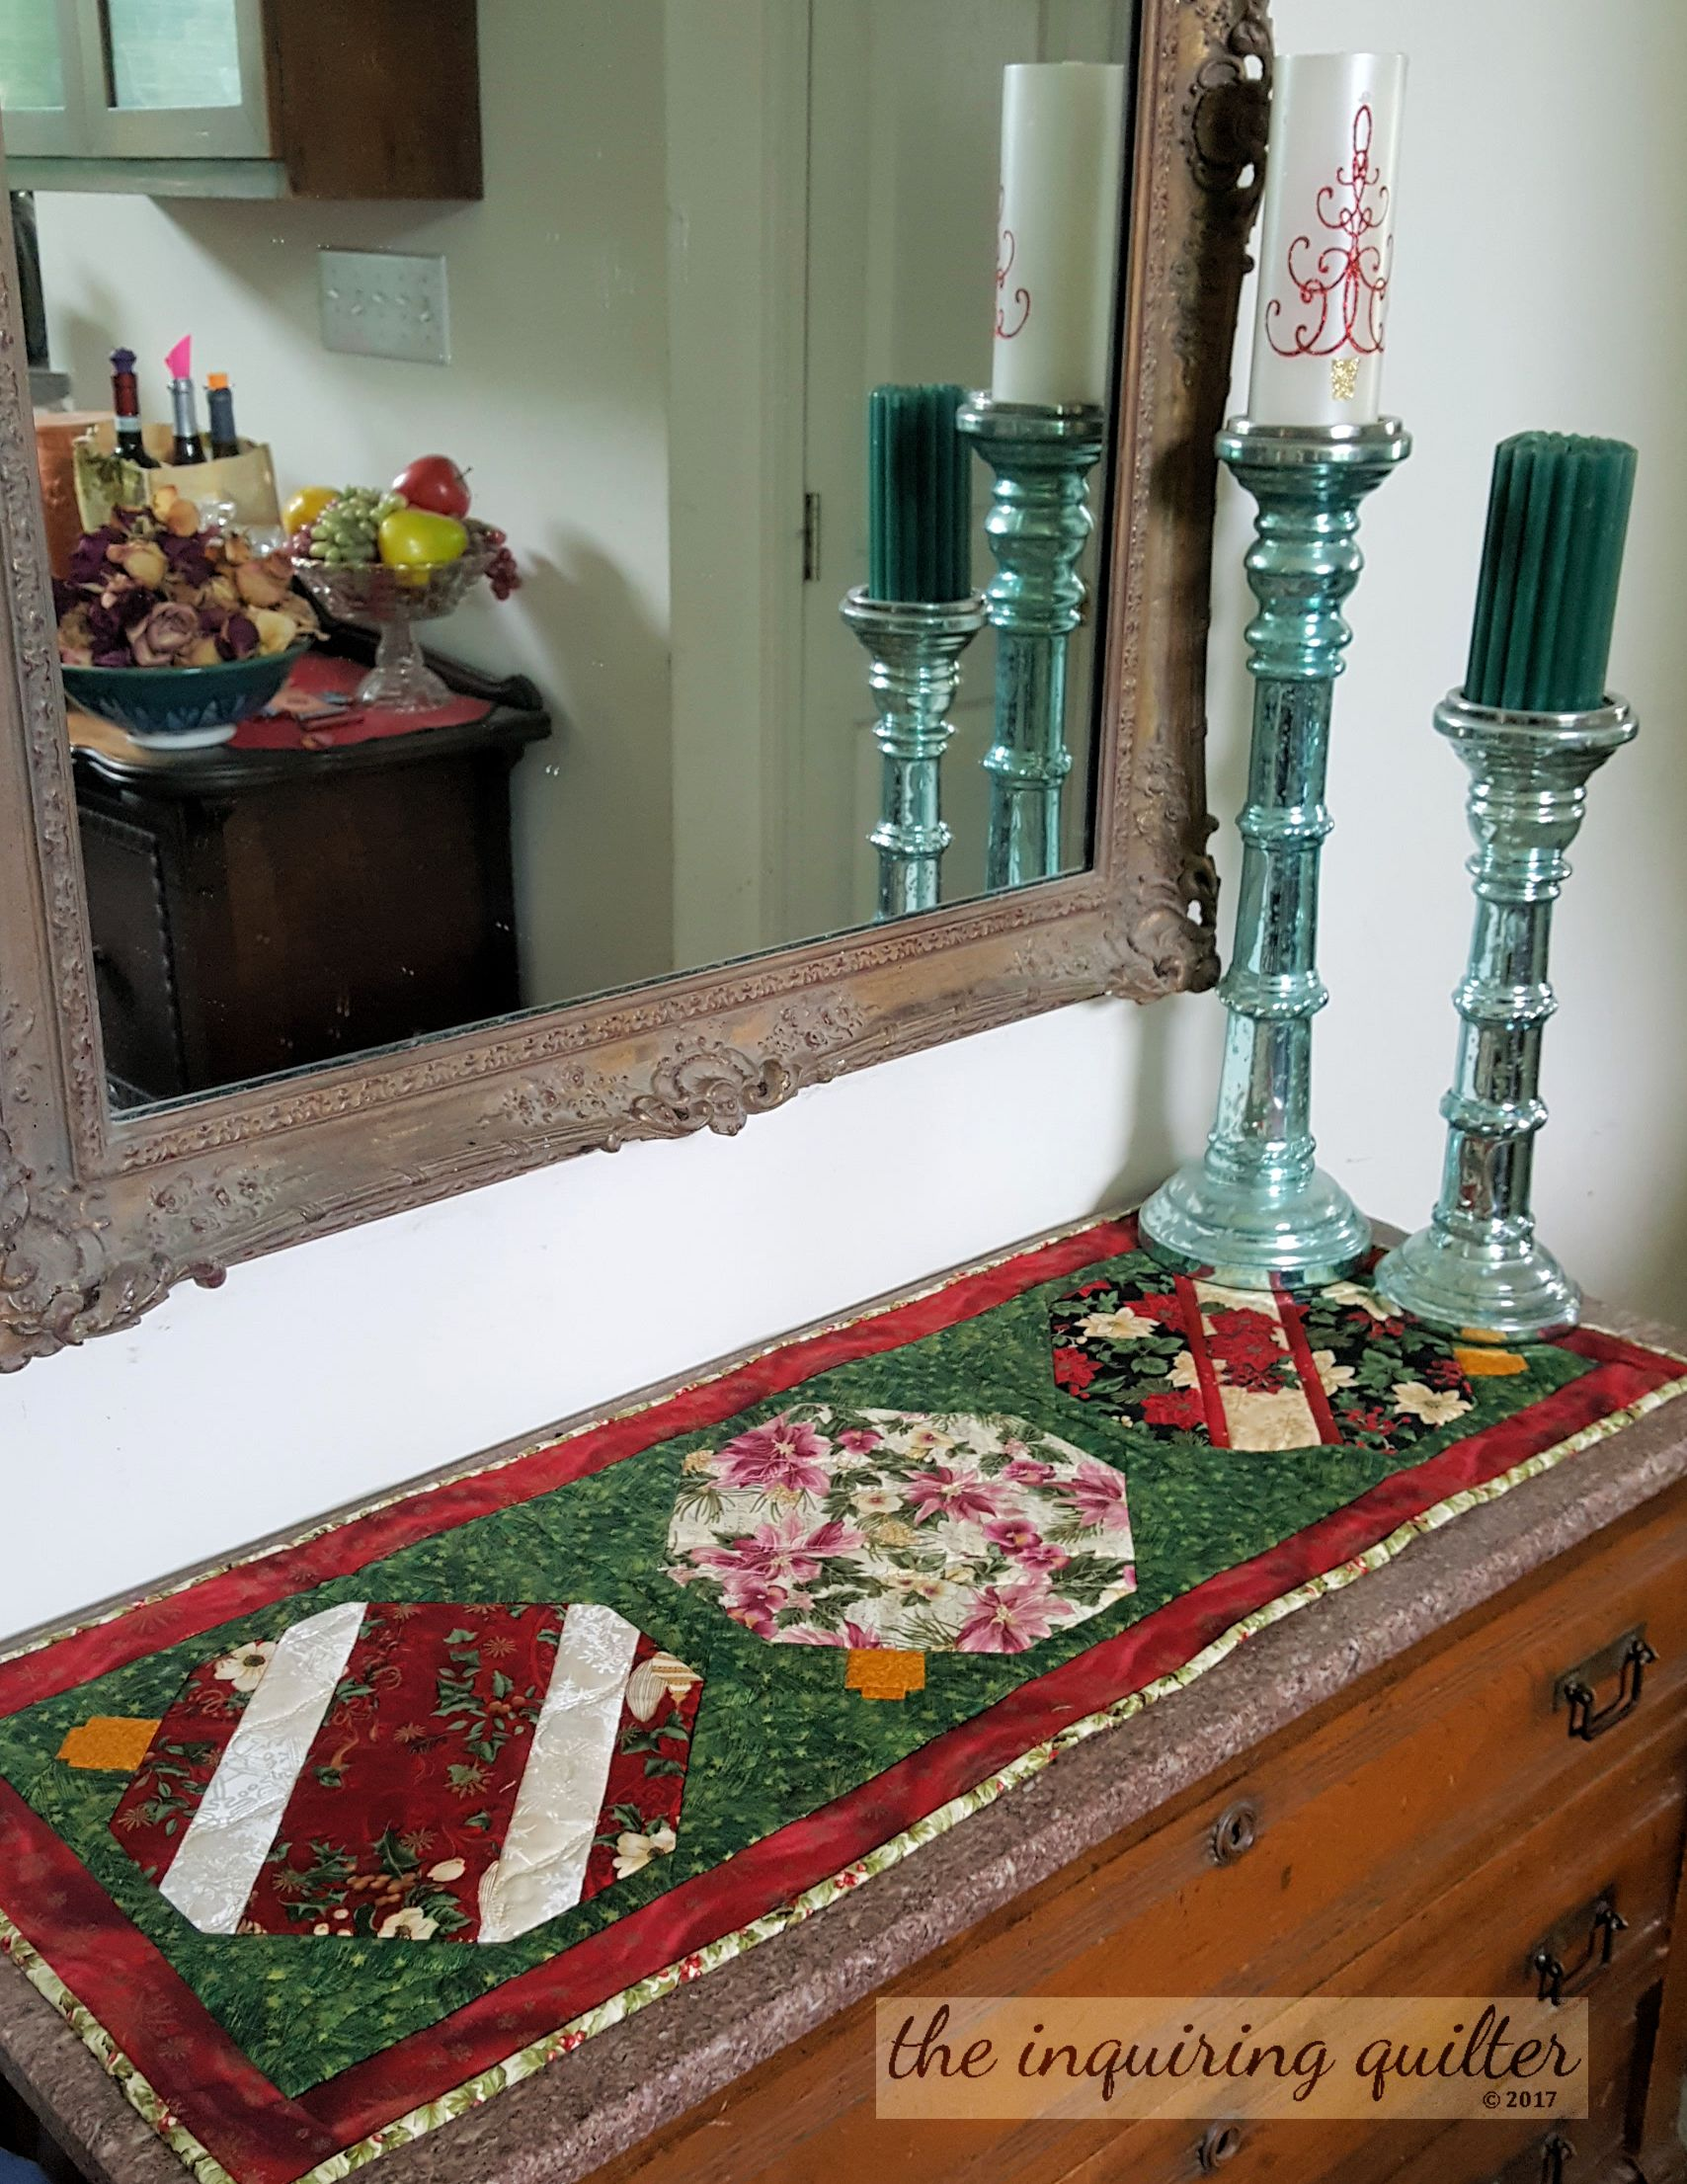 My Merry Berry table runner is quick to make! I shared the pattern for it during the 12 Days of Christmas in July 2017 blog hop.